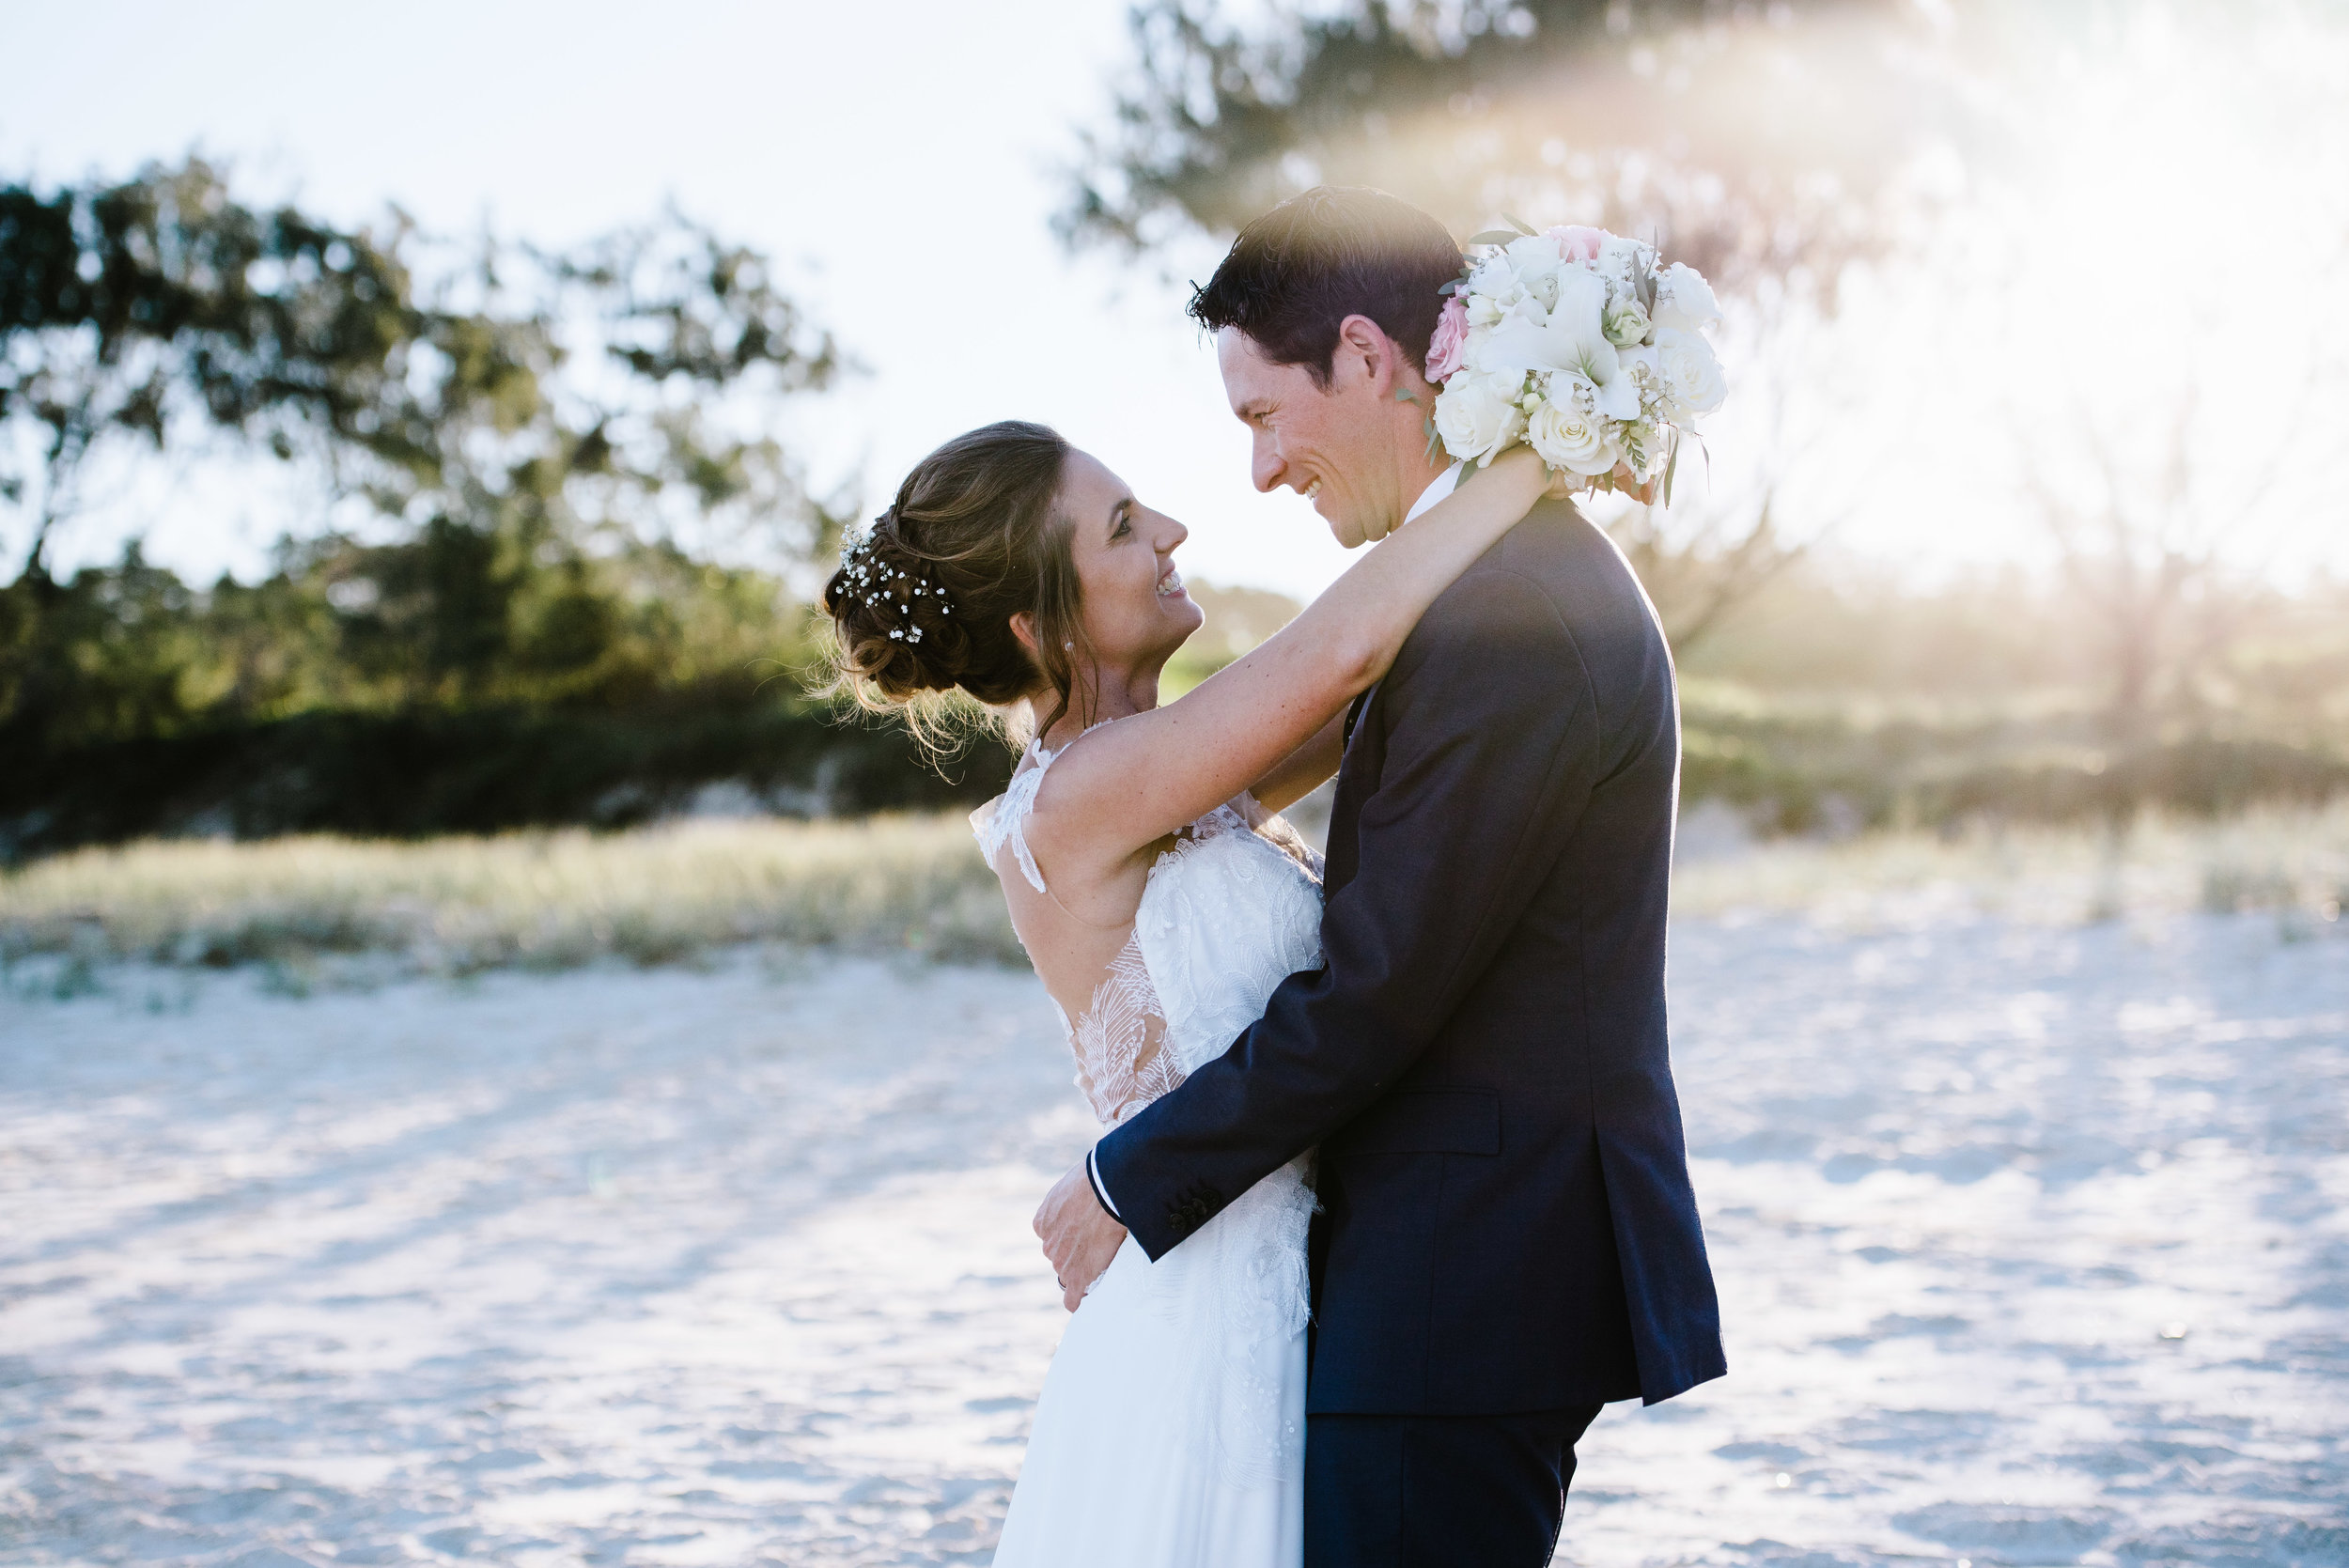 Am and Sam- skyla sage photography weddings, families, byron bay,tweed coast,kingscliff,cabarita,gold coast-393.jpg